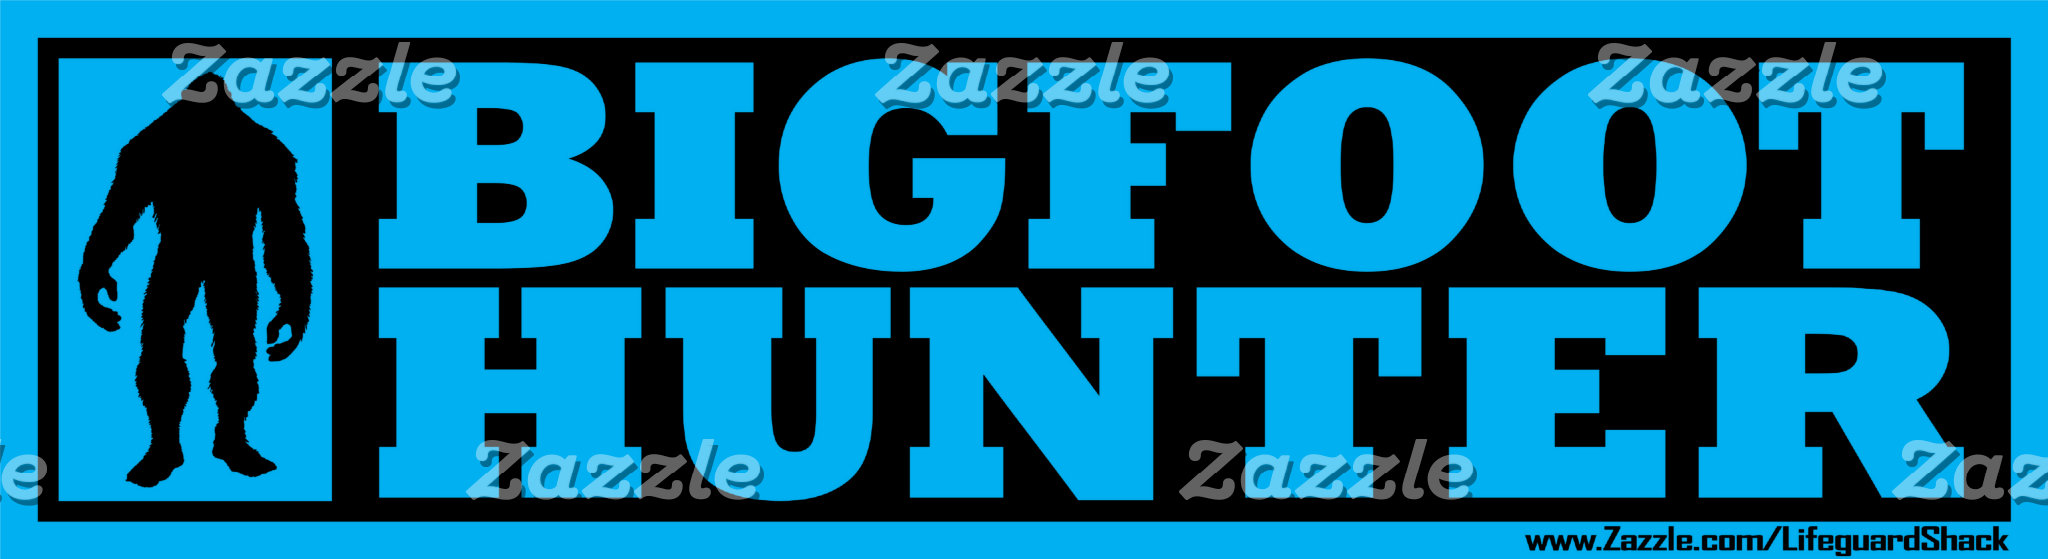 VARIOUS SQUATCHY BUMPER STICKERS